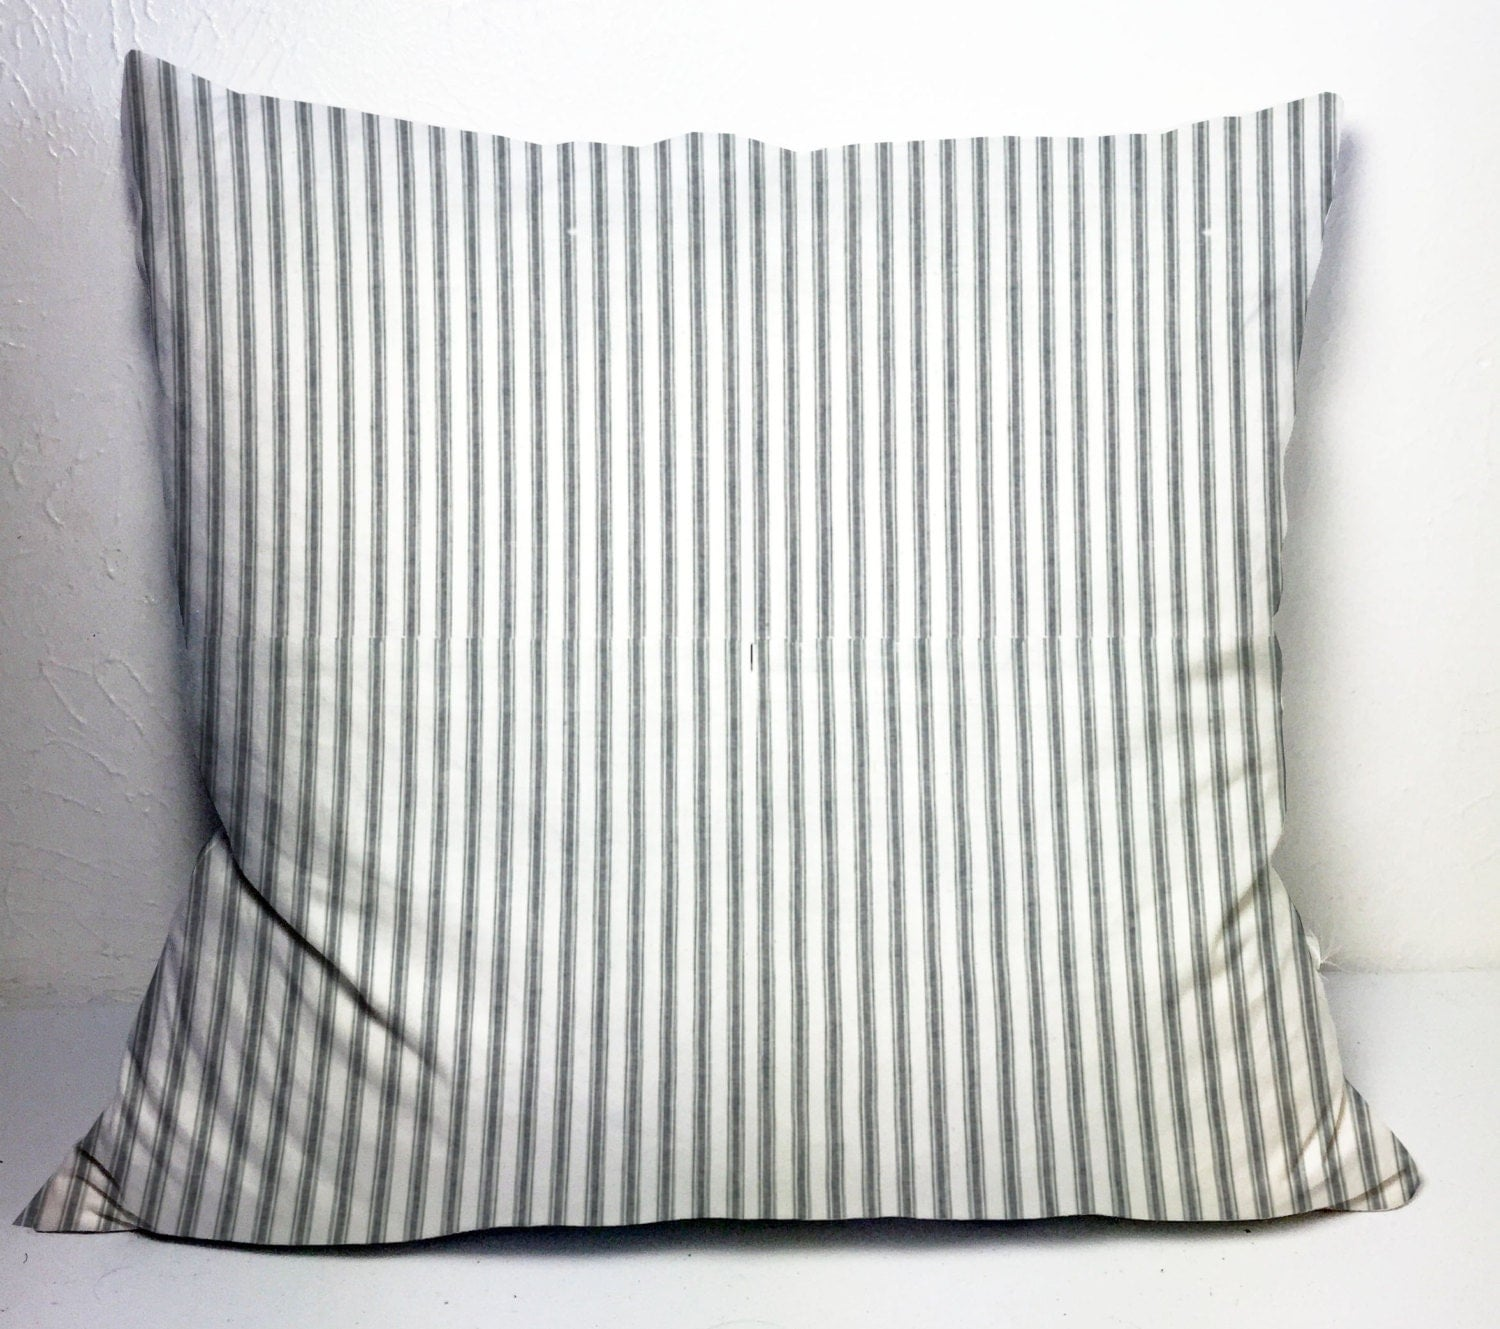 Throw Pillow Covers Farmhouse : Farmhouse pillow cover 24x24 in gray ticking pillow sham large